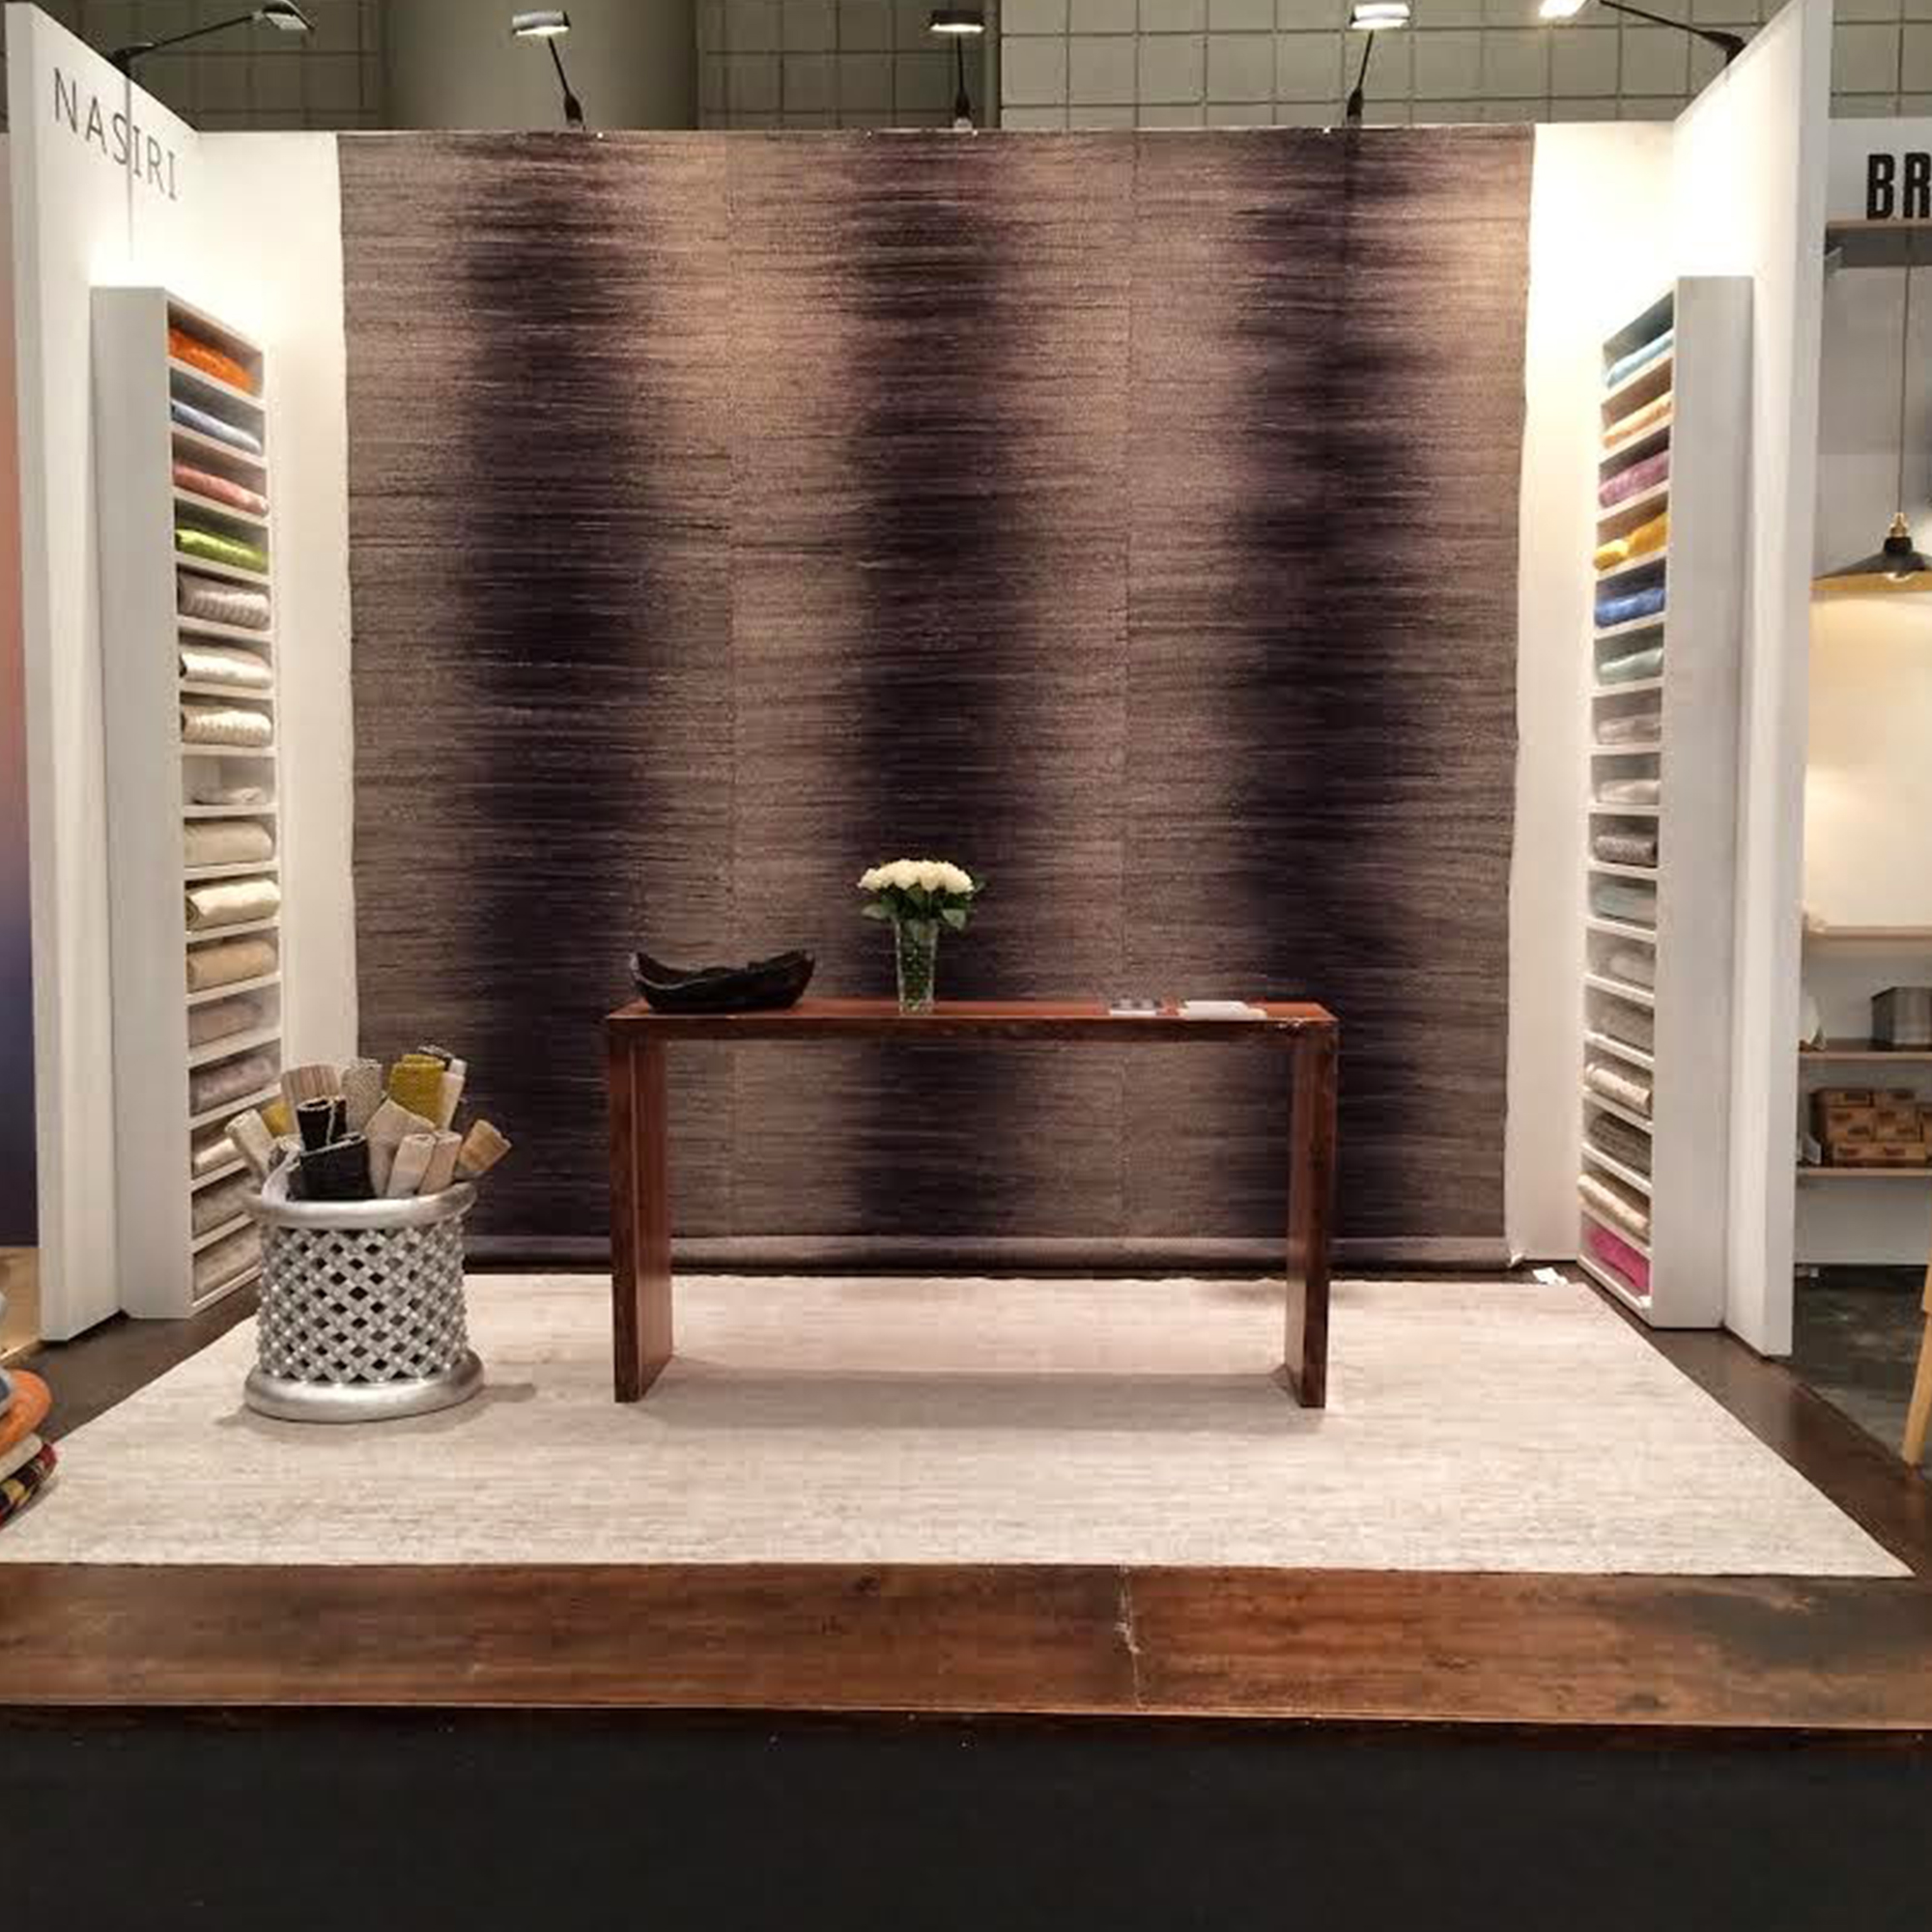 Nasiri Collection Featured in ICFF 2014 Show